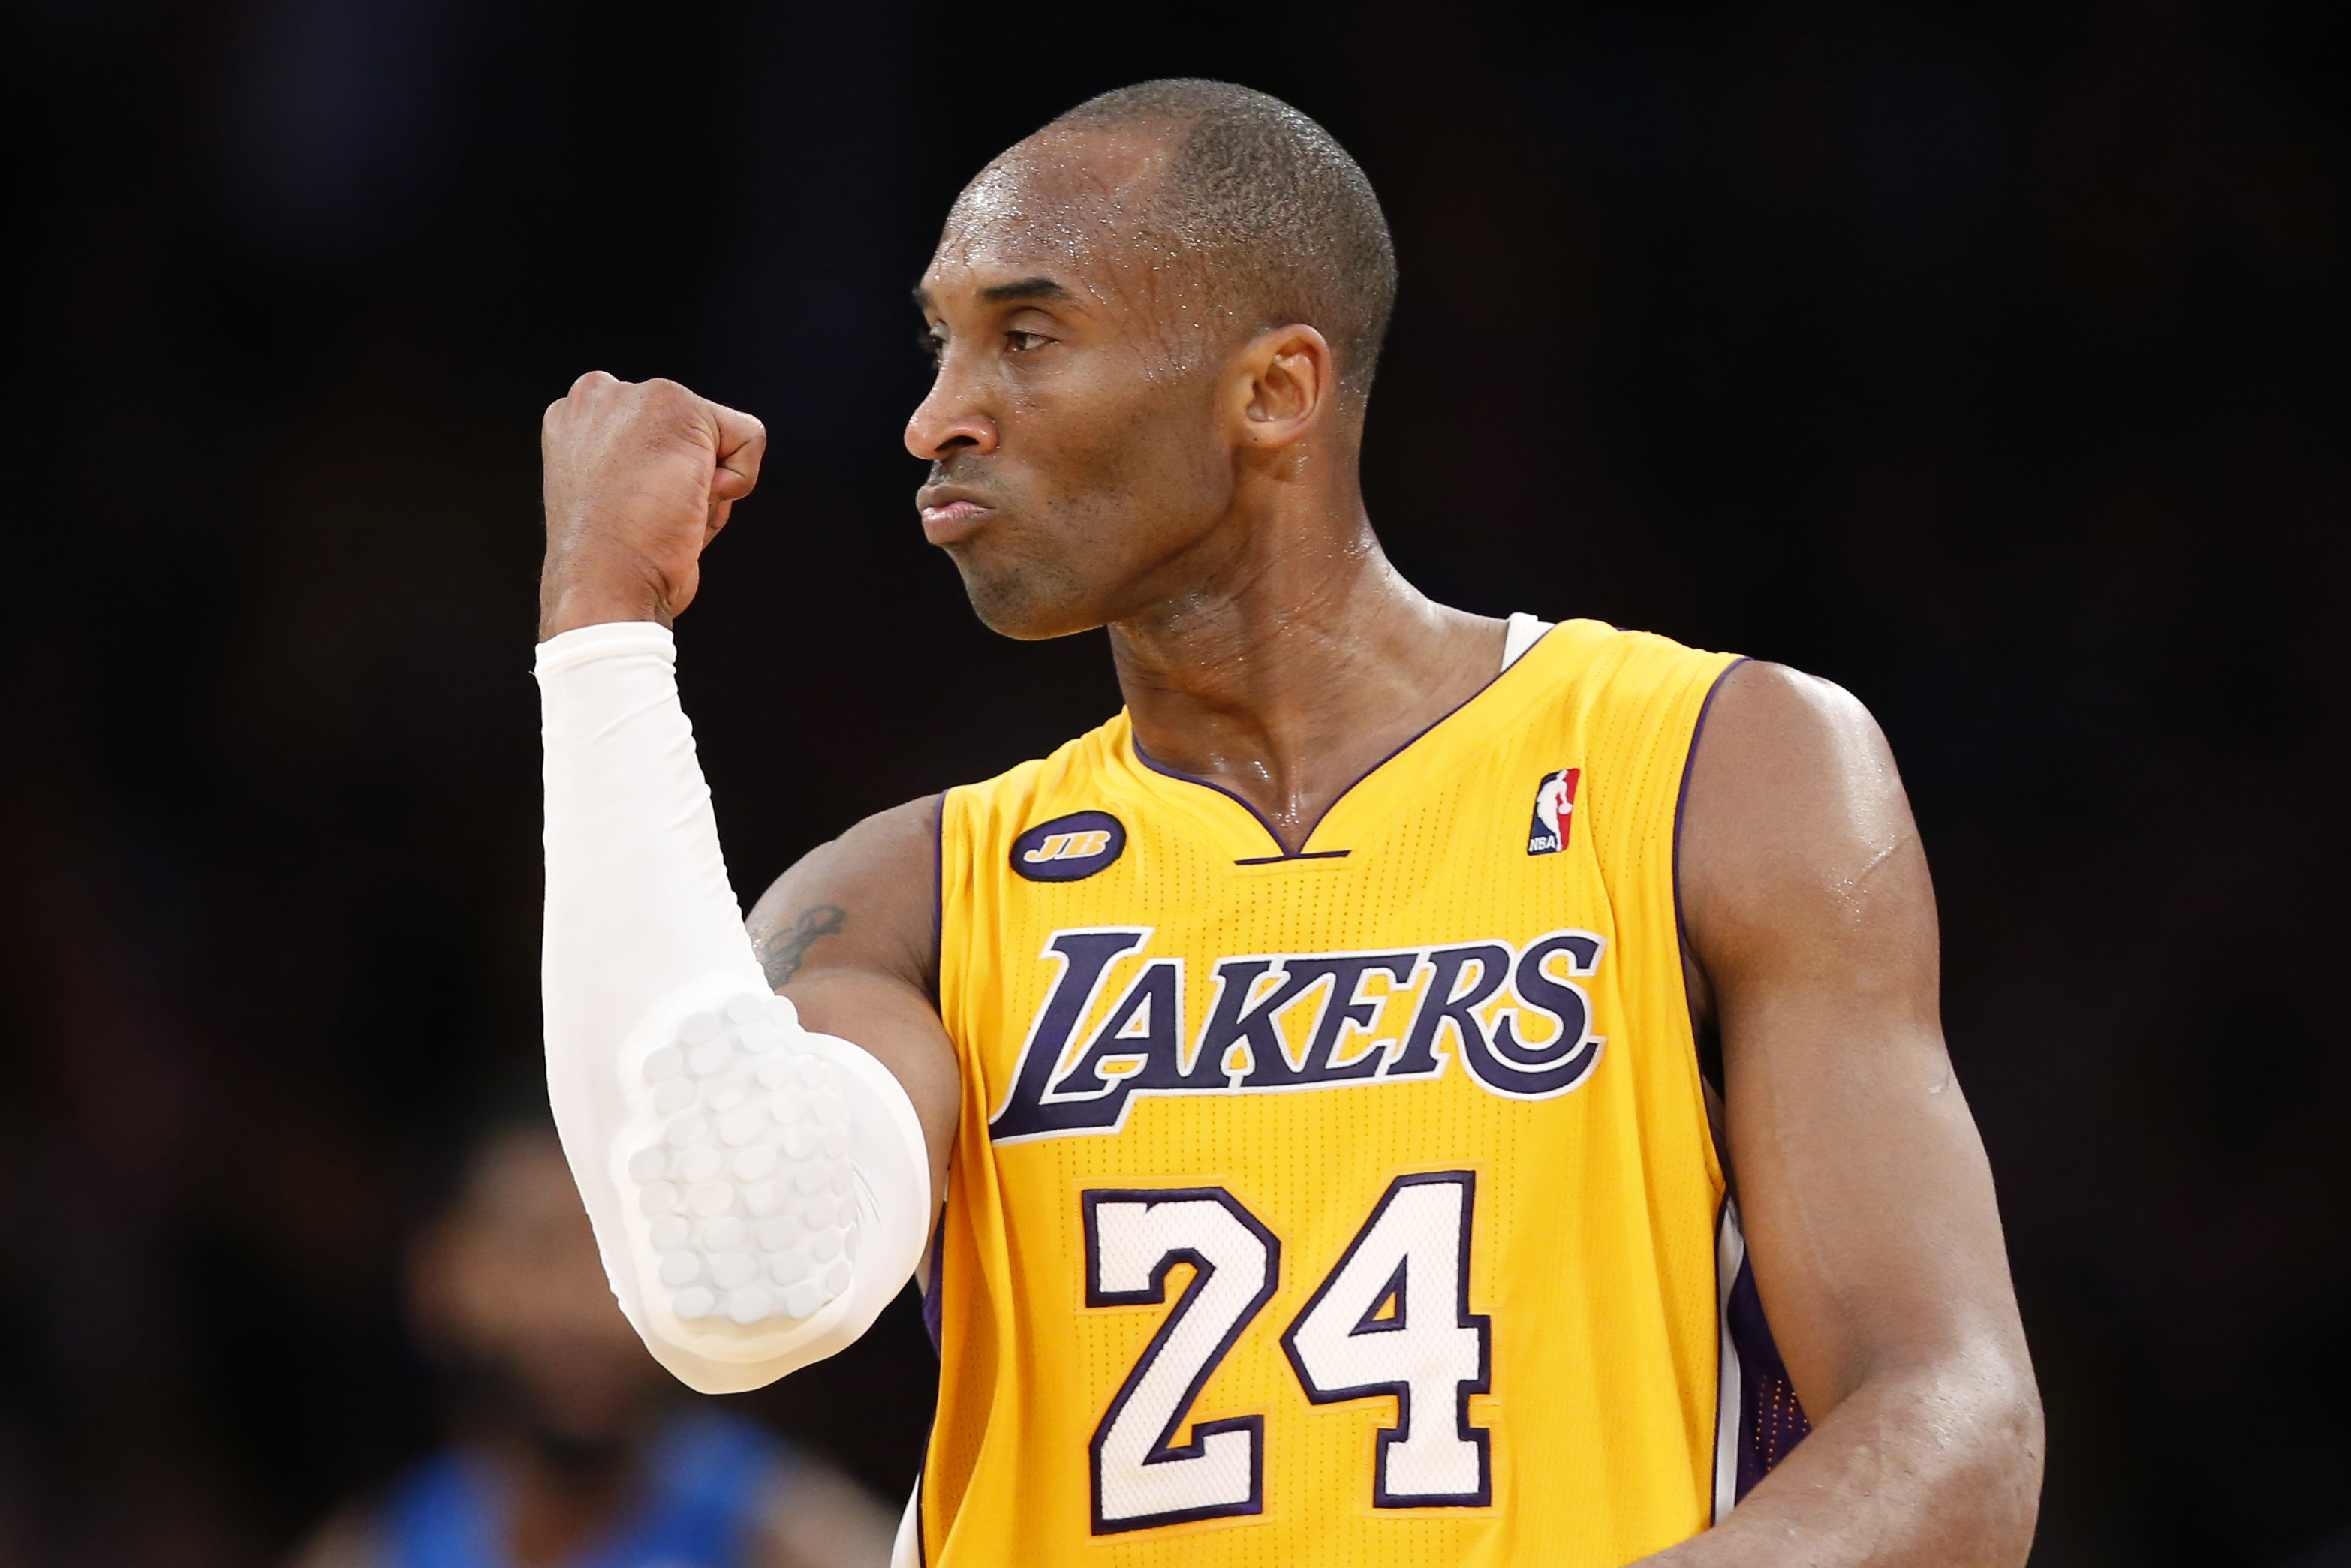 timeless design 7b7bc 2c3f9 Sell air from the last game of Kobe for   15,000